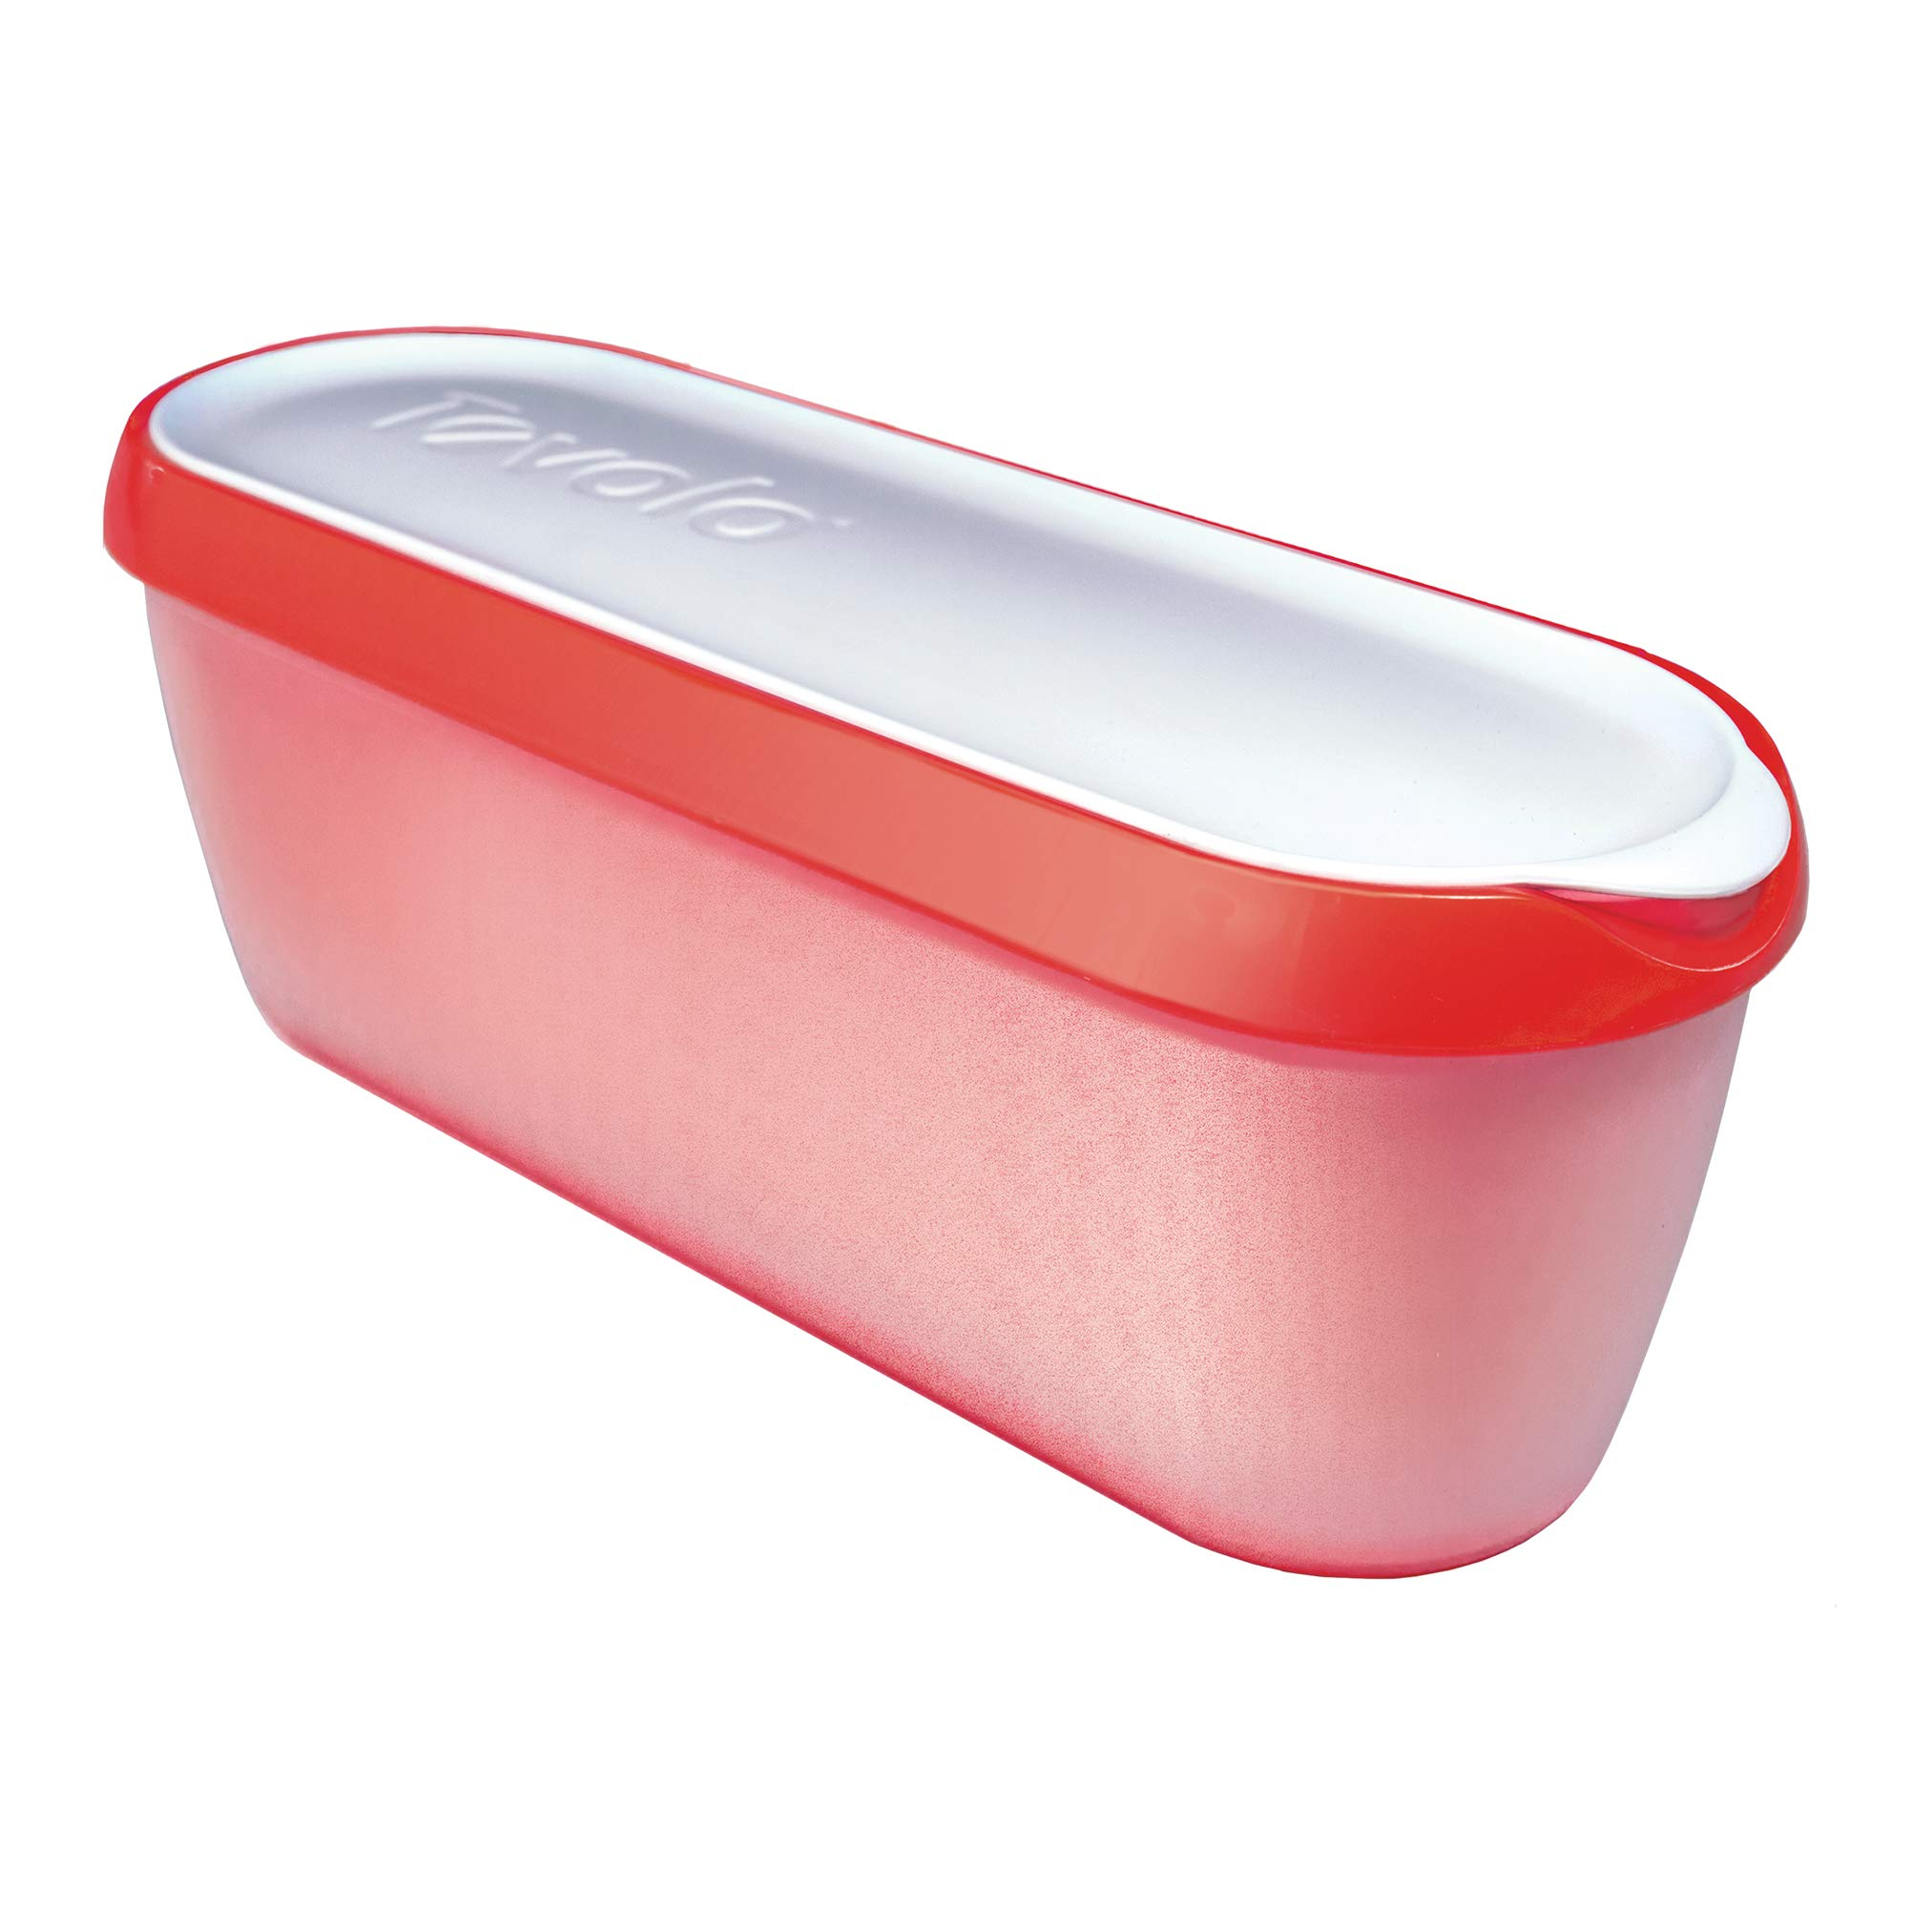 Tovolo Glide-A-Scoop Ice Cream Tub, 1.5 Quart, Insulated, Airtight Reusable Container With Non-Slip Base, Stackable on Freezer Shelves, BPA-Free, Strawberry Sorbet